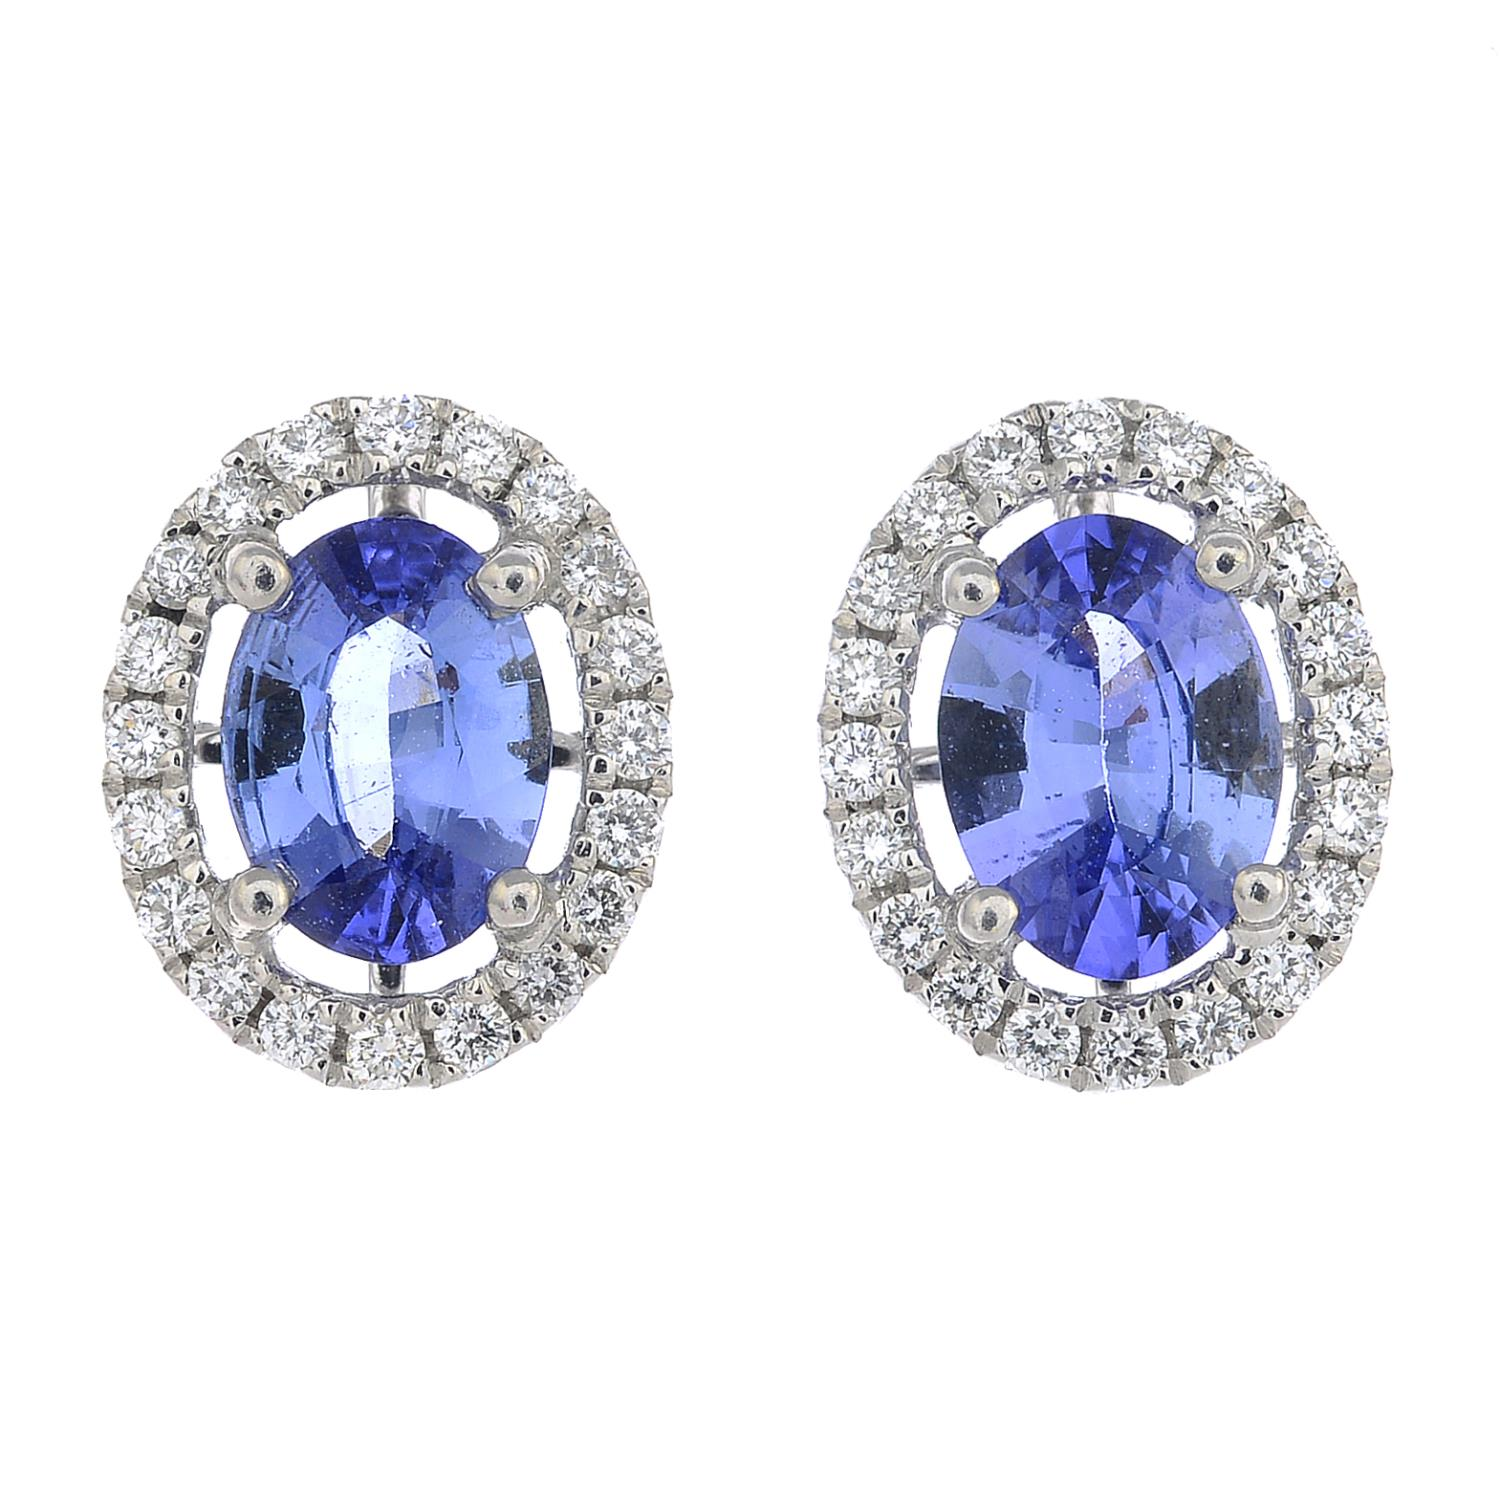 Lot 24 - A pair of sapphire and diamond cluster earrings.Total sapphire weight 1.73cts.Total diamond weight